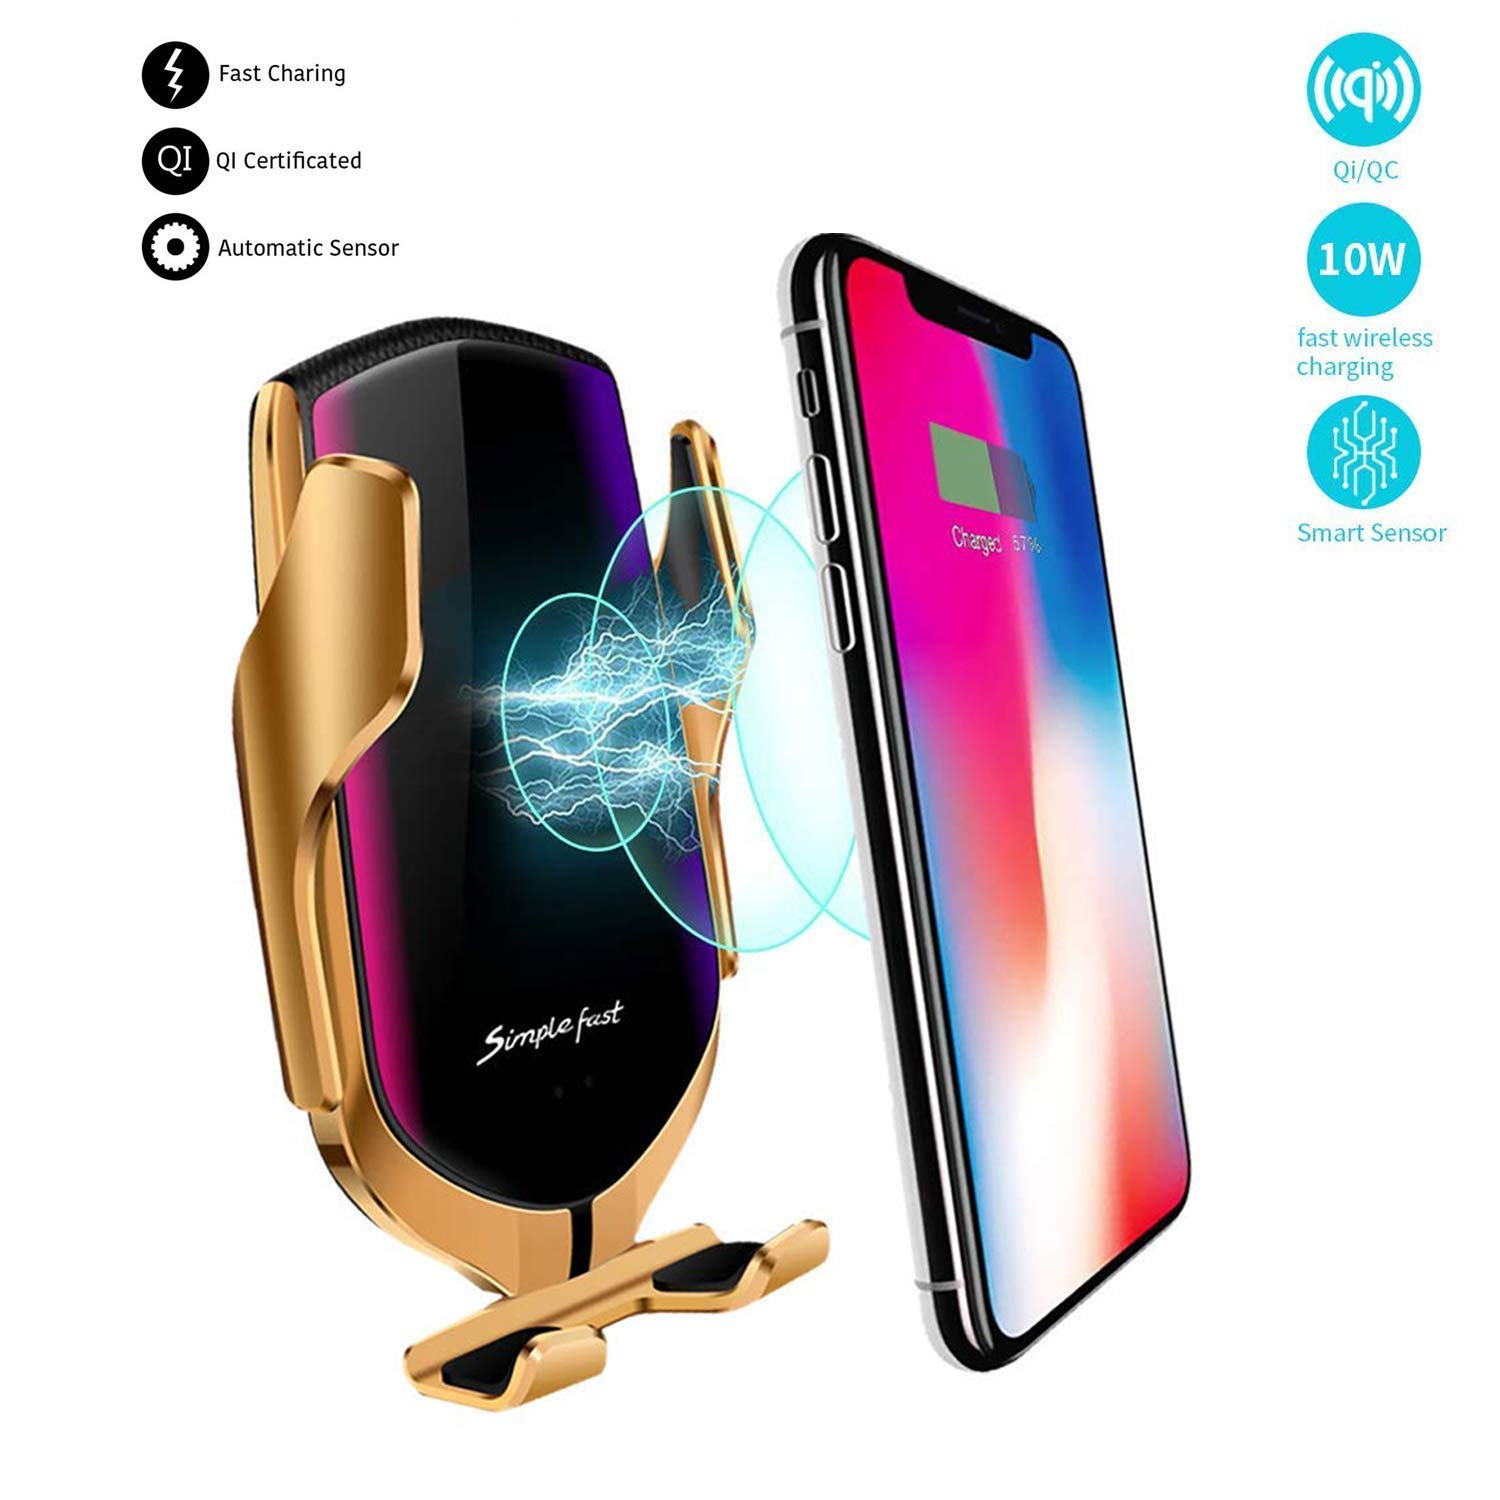 KMI CHOU R2 Wireless Car Charger,Automatic Clamping IR Intelligent Wireless Car Charger Mount - Car Charger Holder 10W Fast Charging for iPhone Xs Max/XR/X/8/8Plus Samsung S10/S9/S8/Note 8 by KMI CHOU